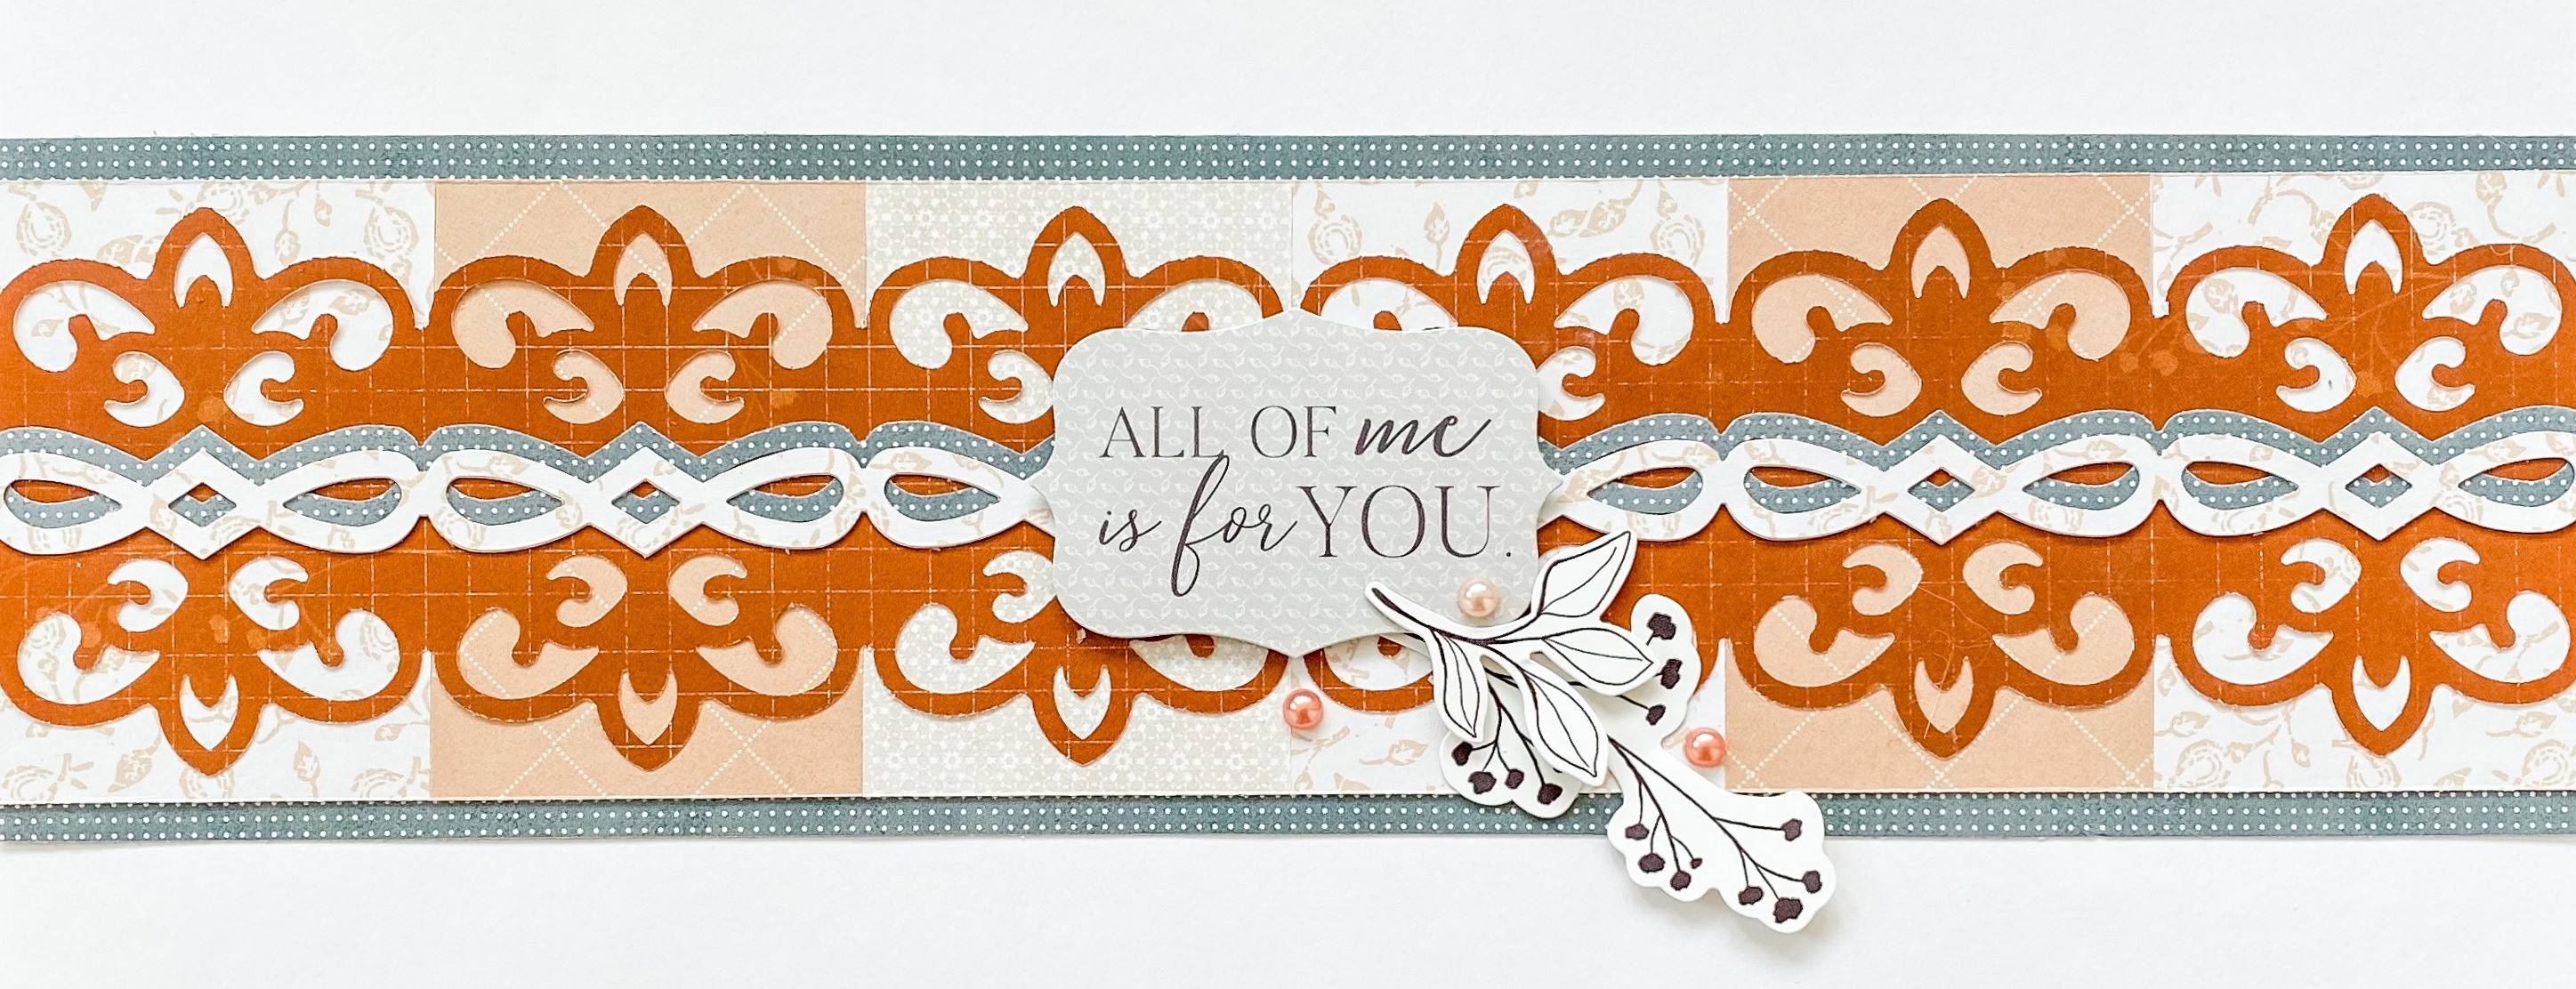 All-My-Love-Collection-Scrapbooking-Borders-Creative-Memories-4